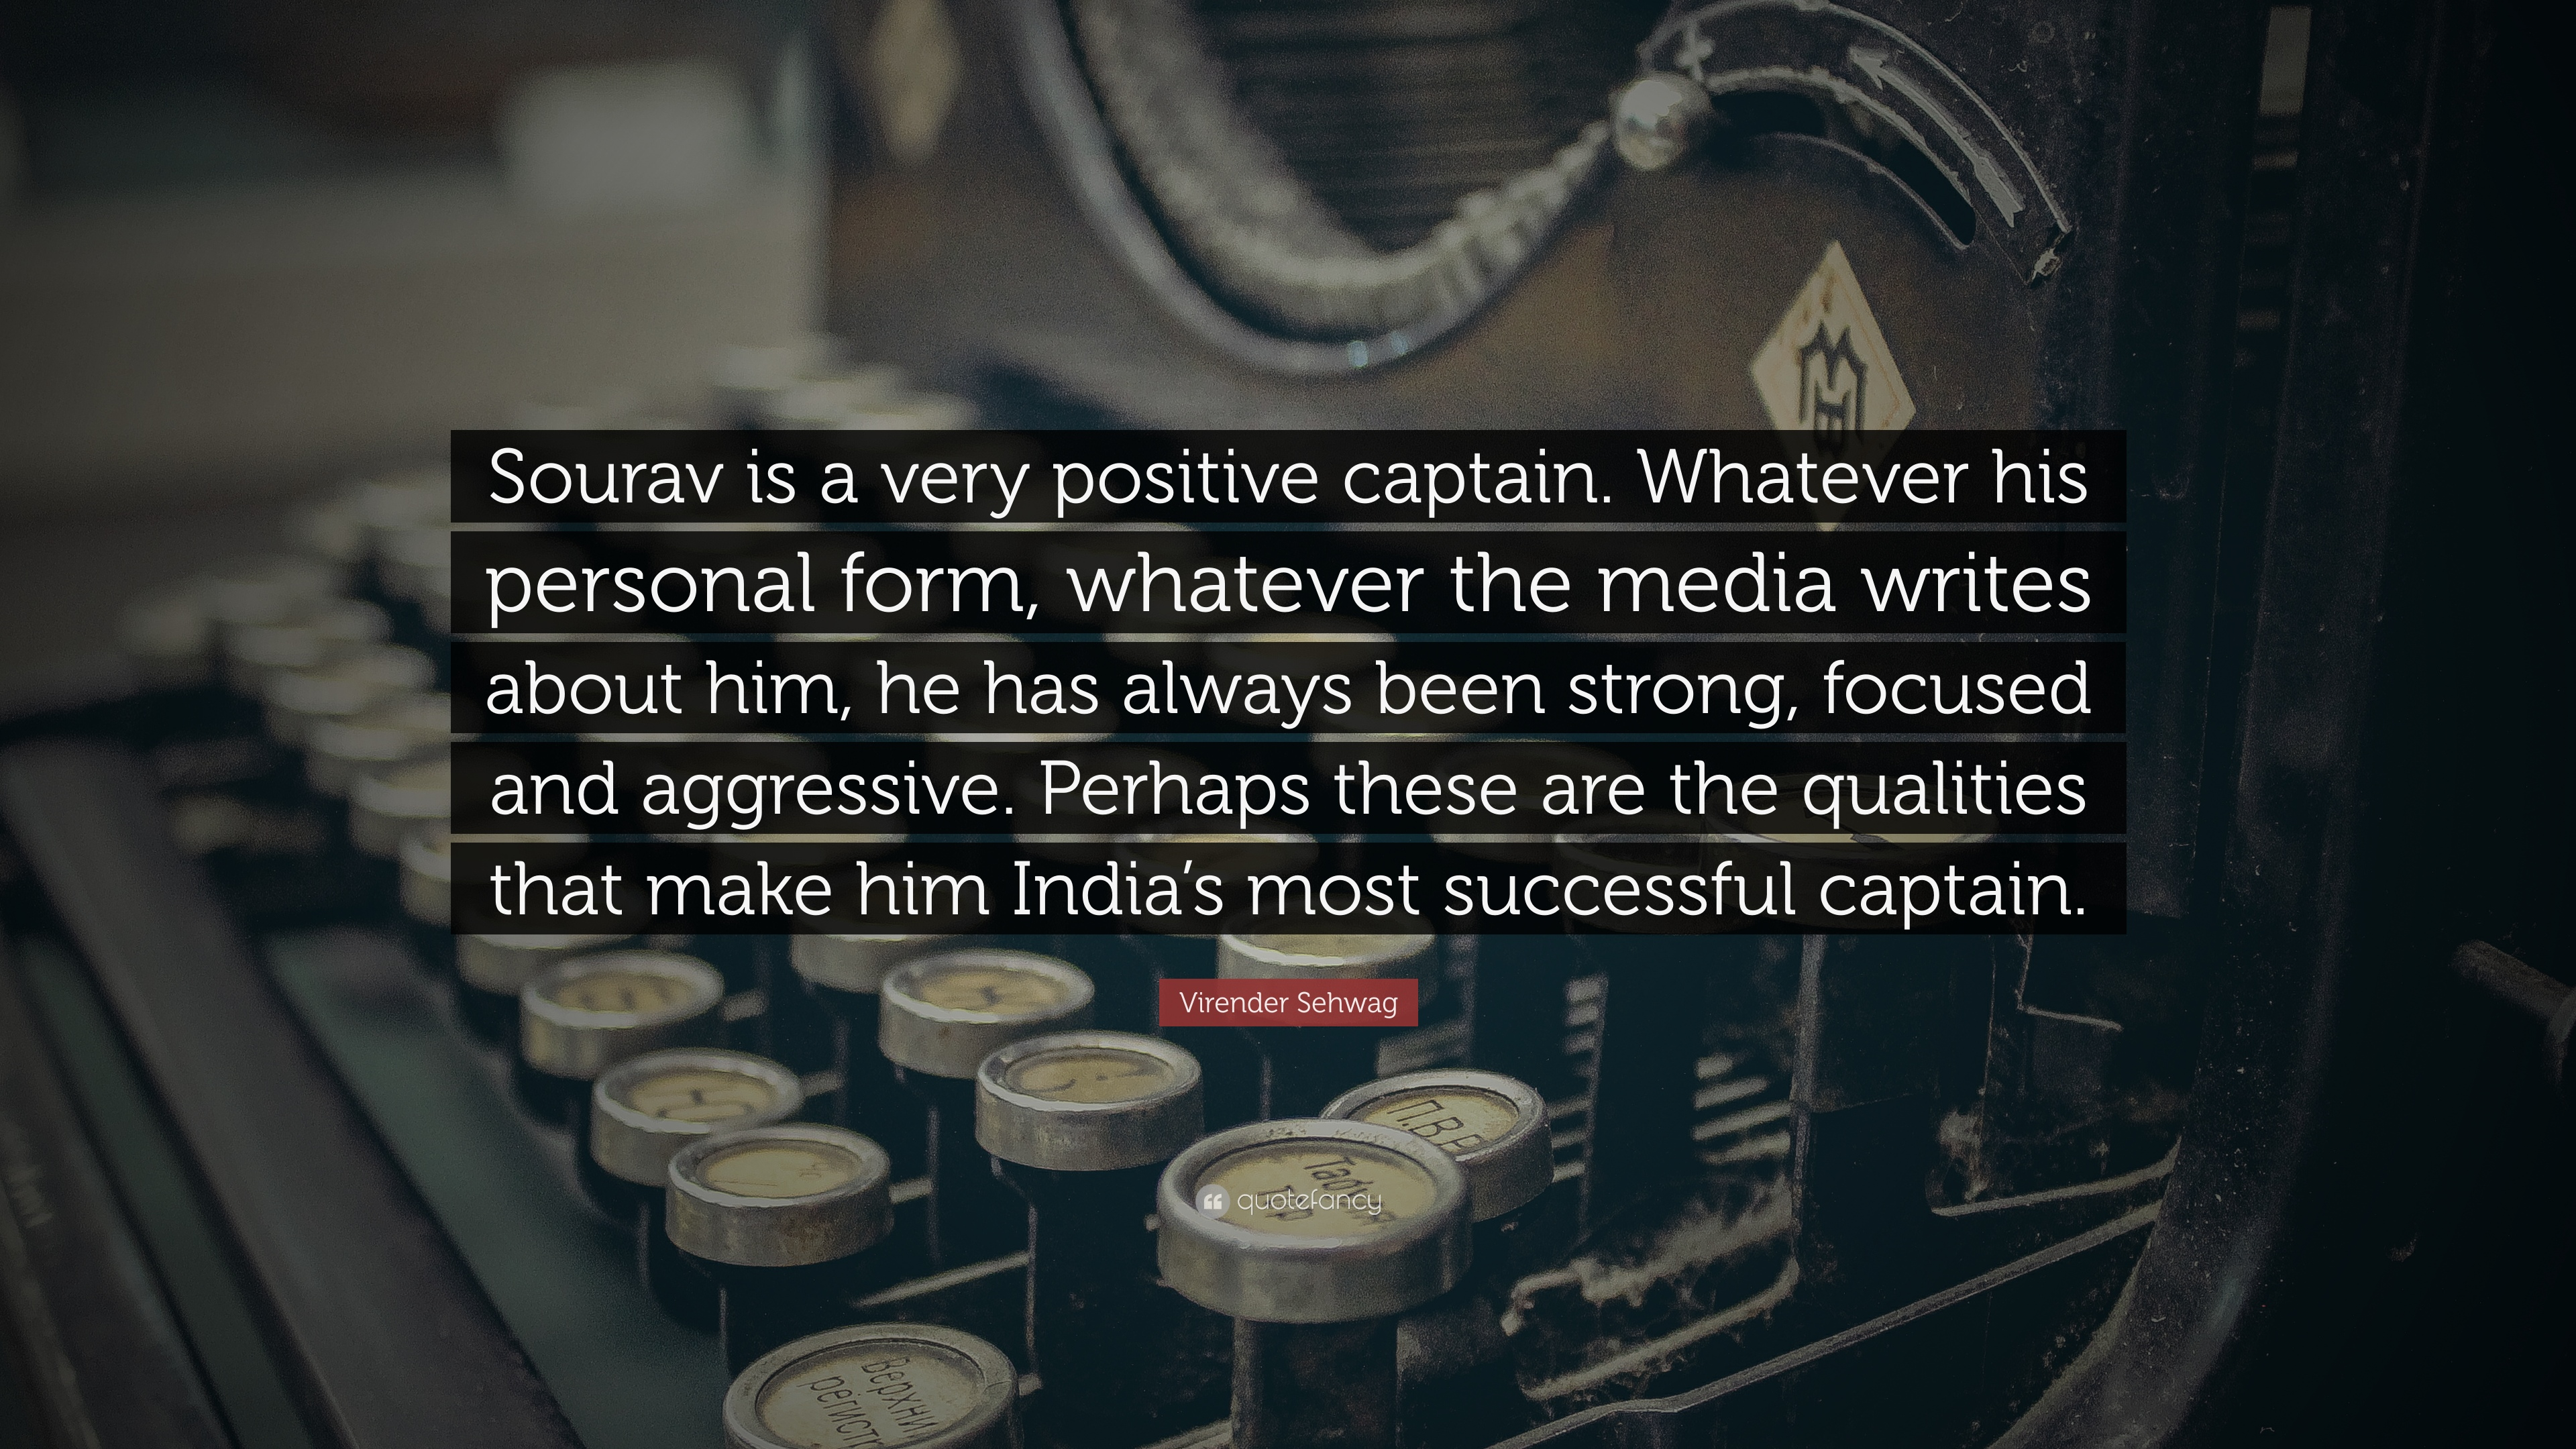 virender sehwag quote sourav is a very positive captain whatever